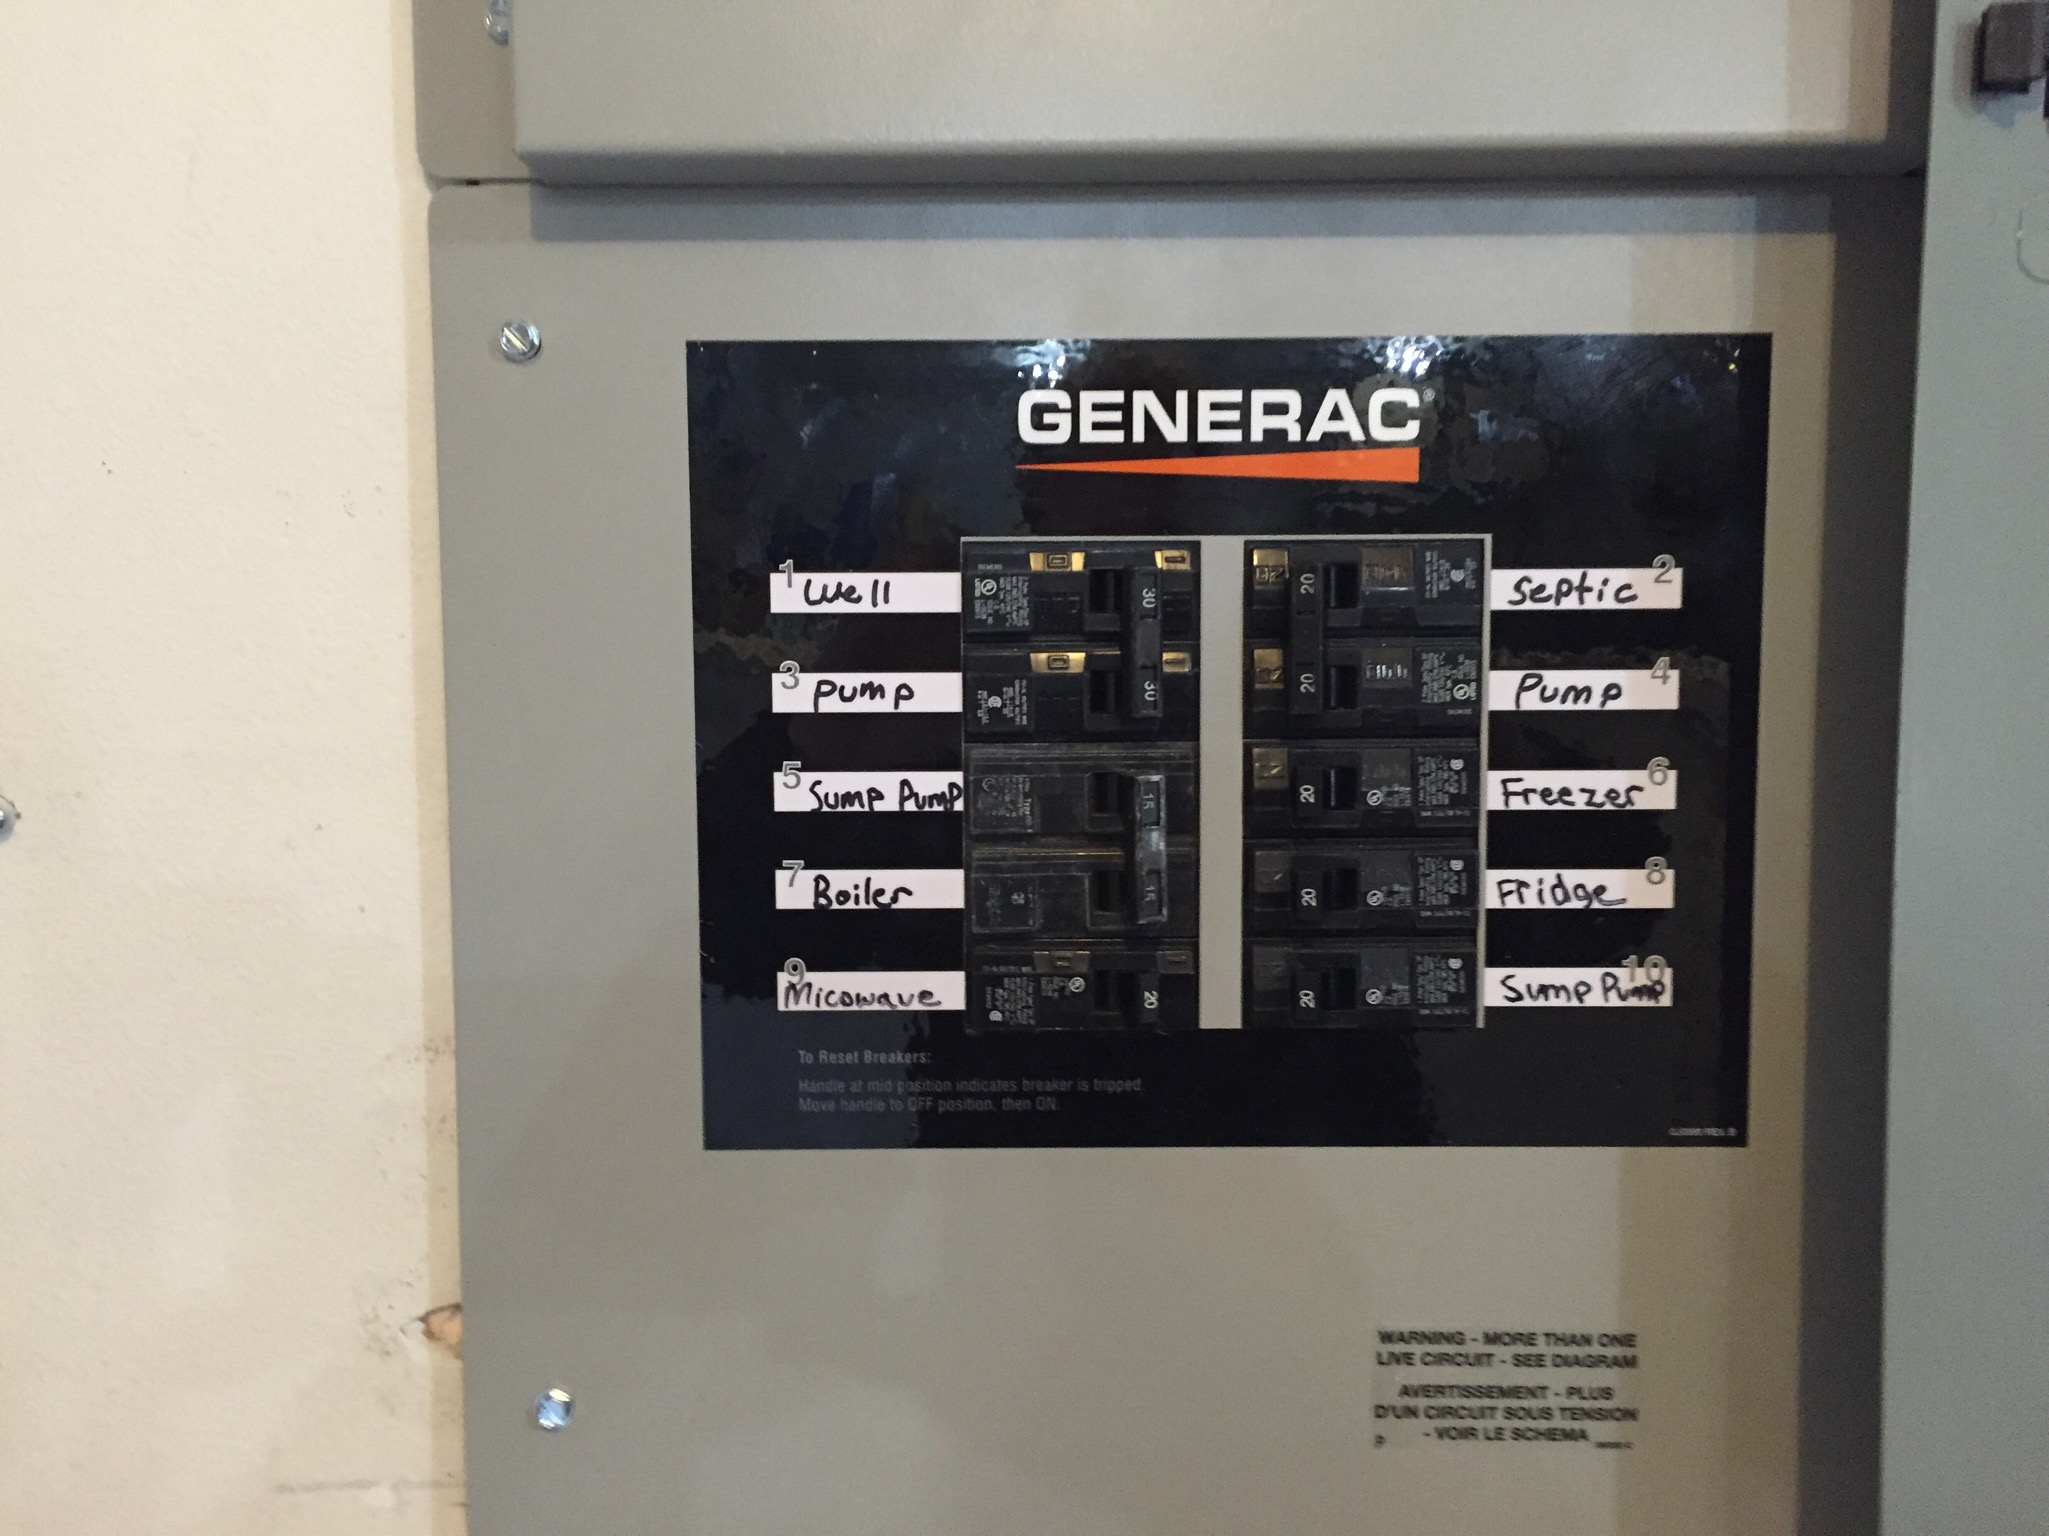 Electrical Wiring Archives Page 2 Of 3 Afci Breakers Safety Services Philadelphia Pa Whole House Generators Standby Generator Installer Generac